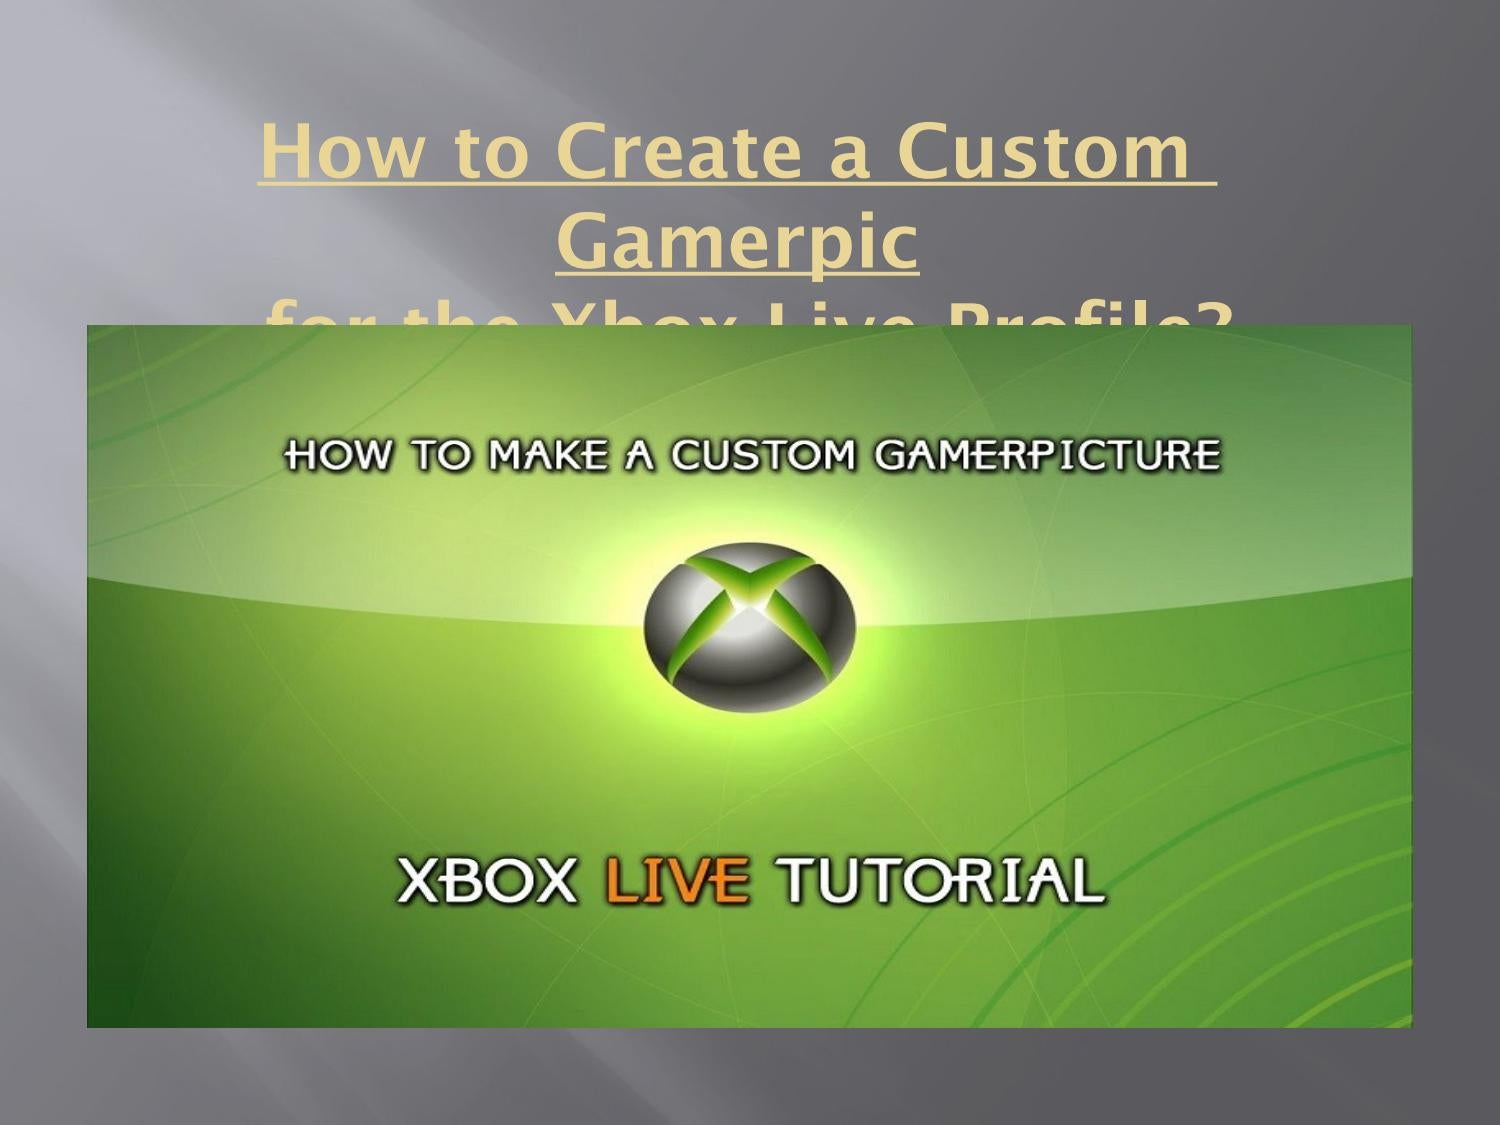 How To Create A Custom Gamerpic For The Xbox Live Profile By Ryansmith030 Issuu